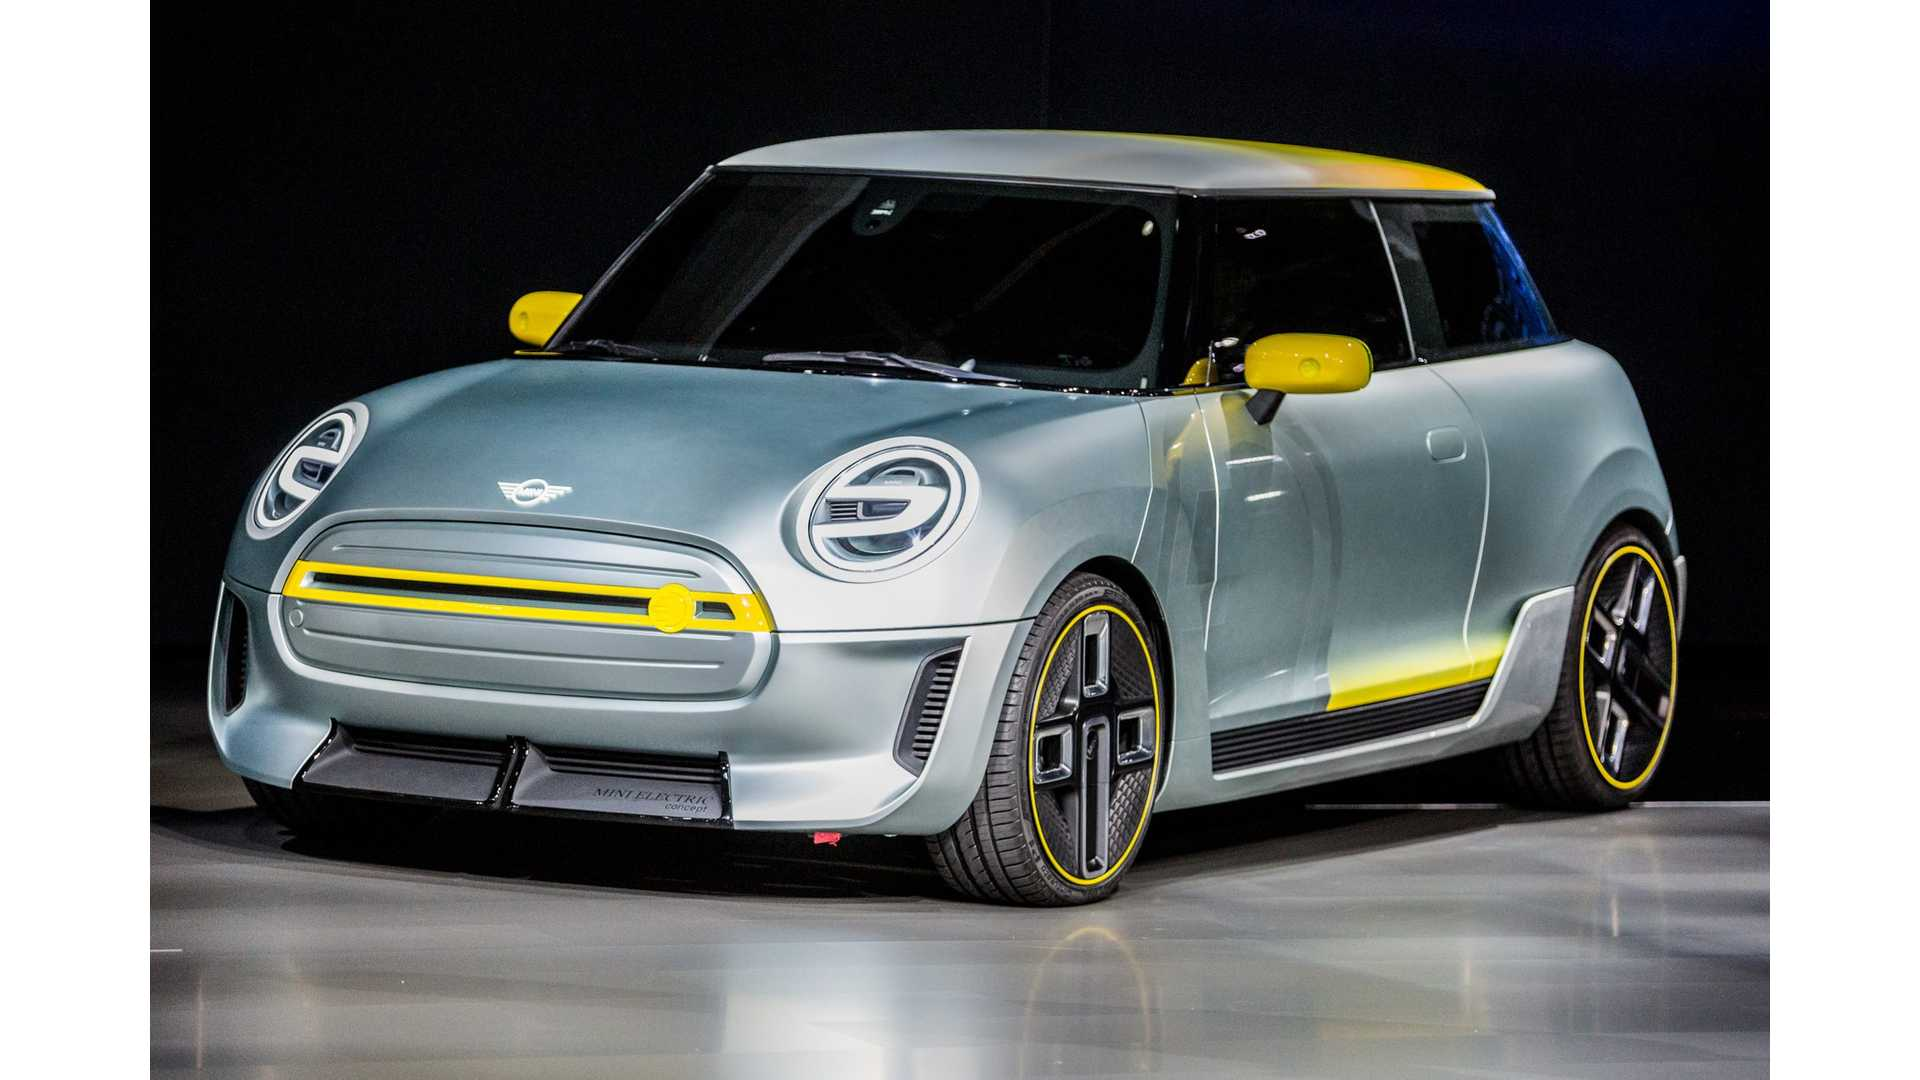 61 All New Mini Bev 2019 Overview